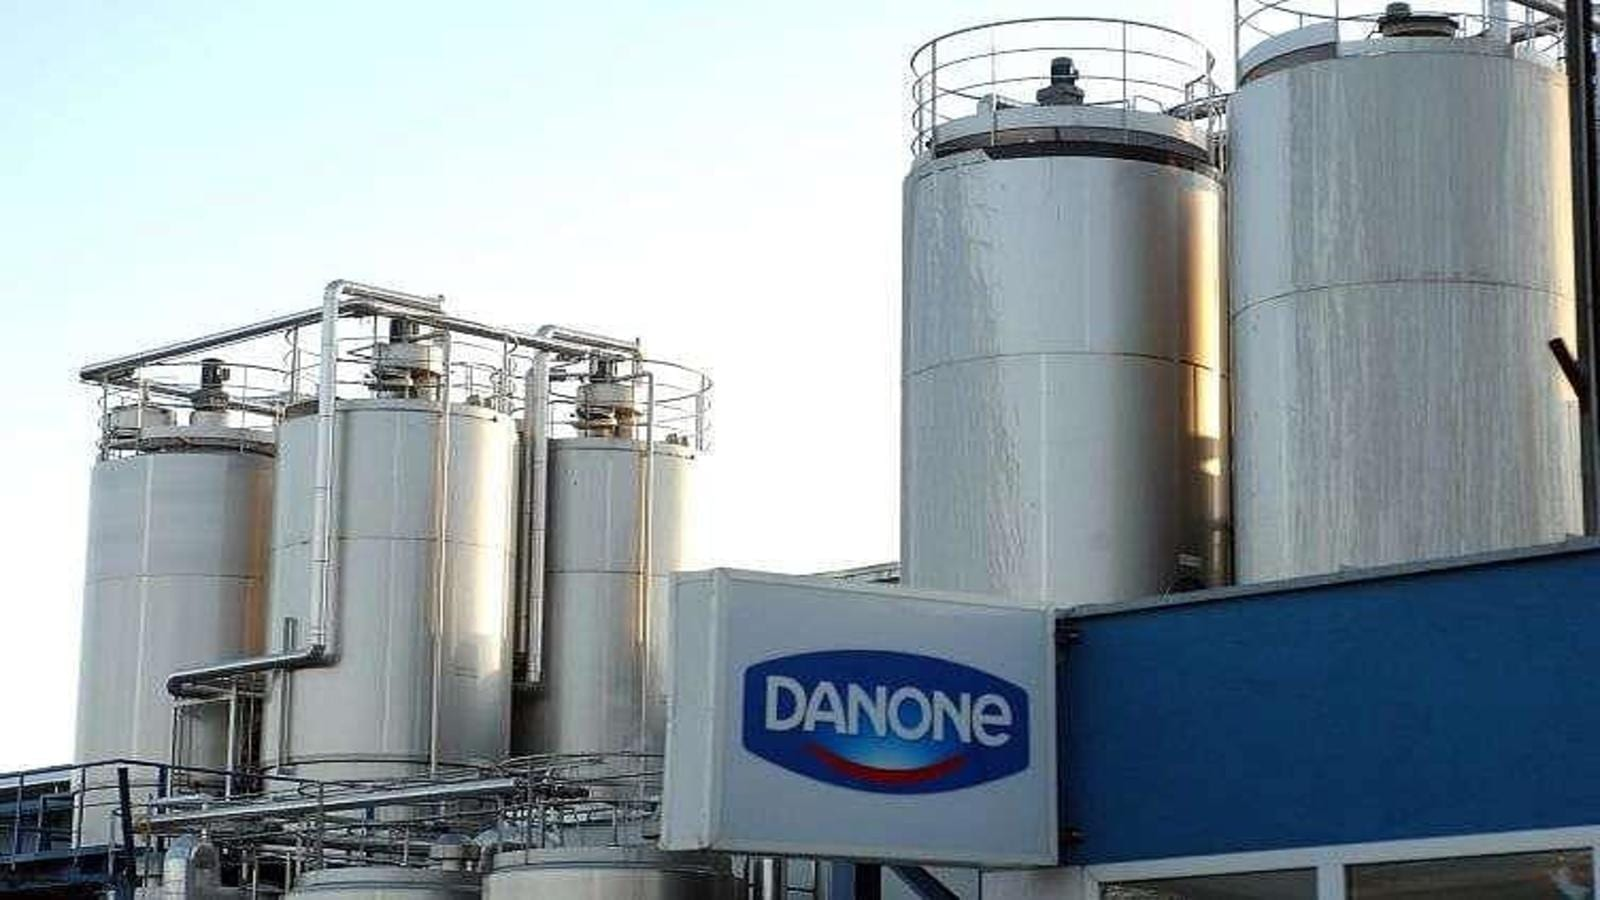 Danone bounces back to profitable growth in H1, announces board revamp, share buyback program